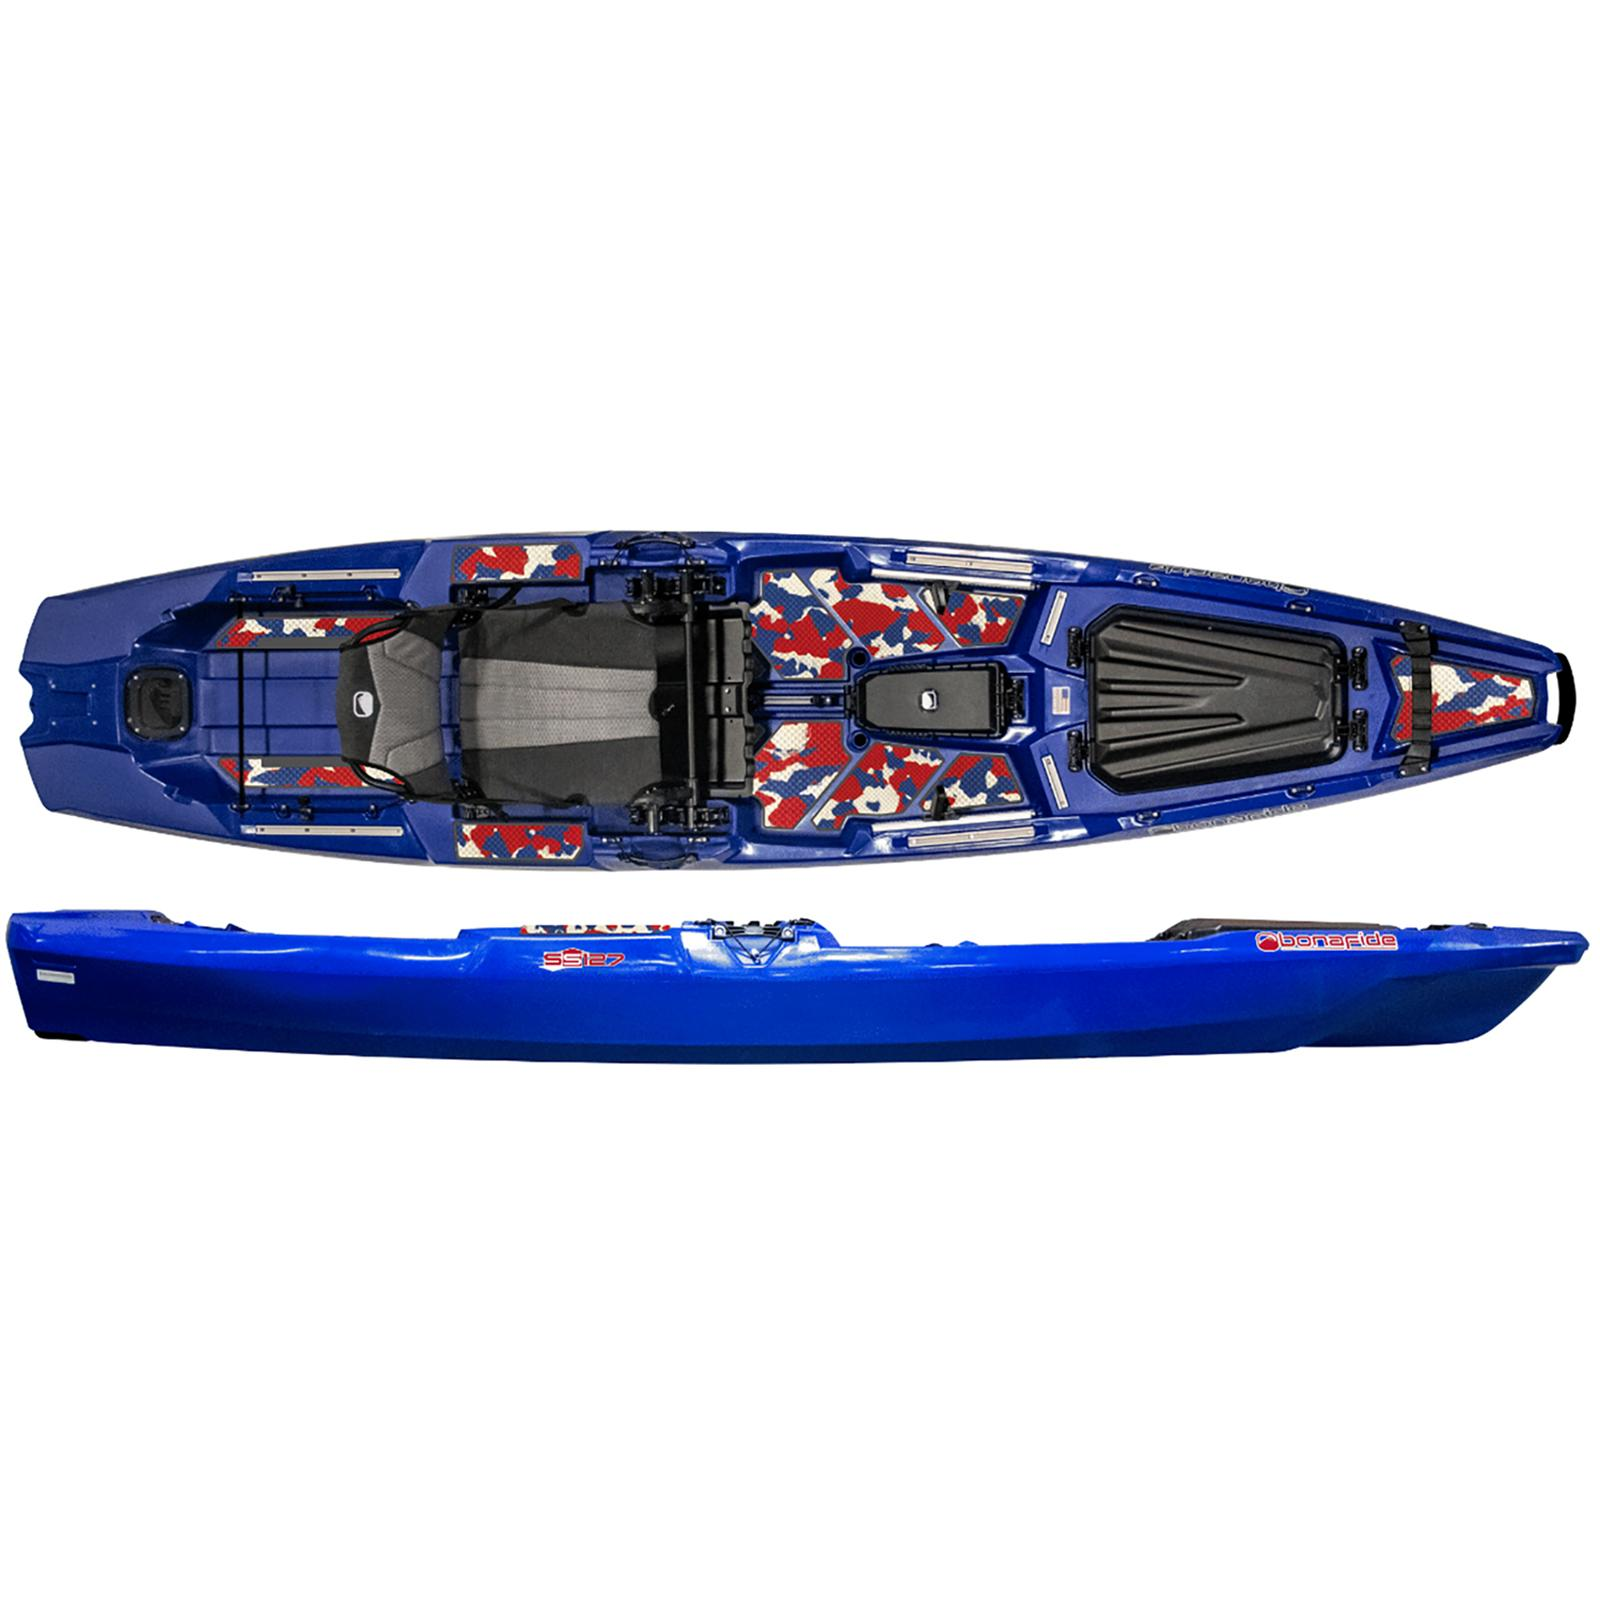 Bonafide Limited Edition SS127 Sit-On-Top Fishing Kayak